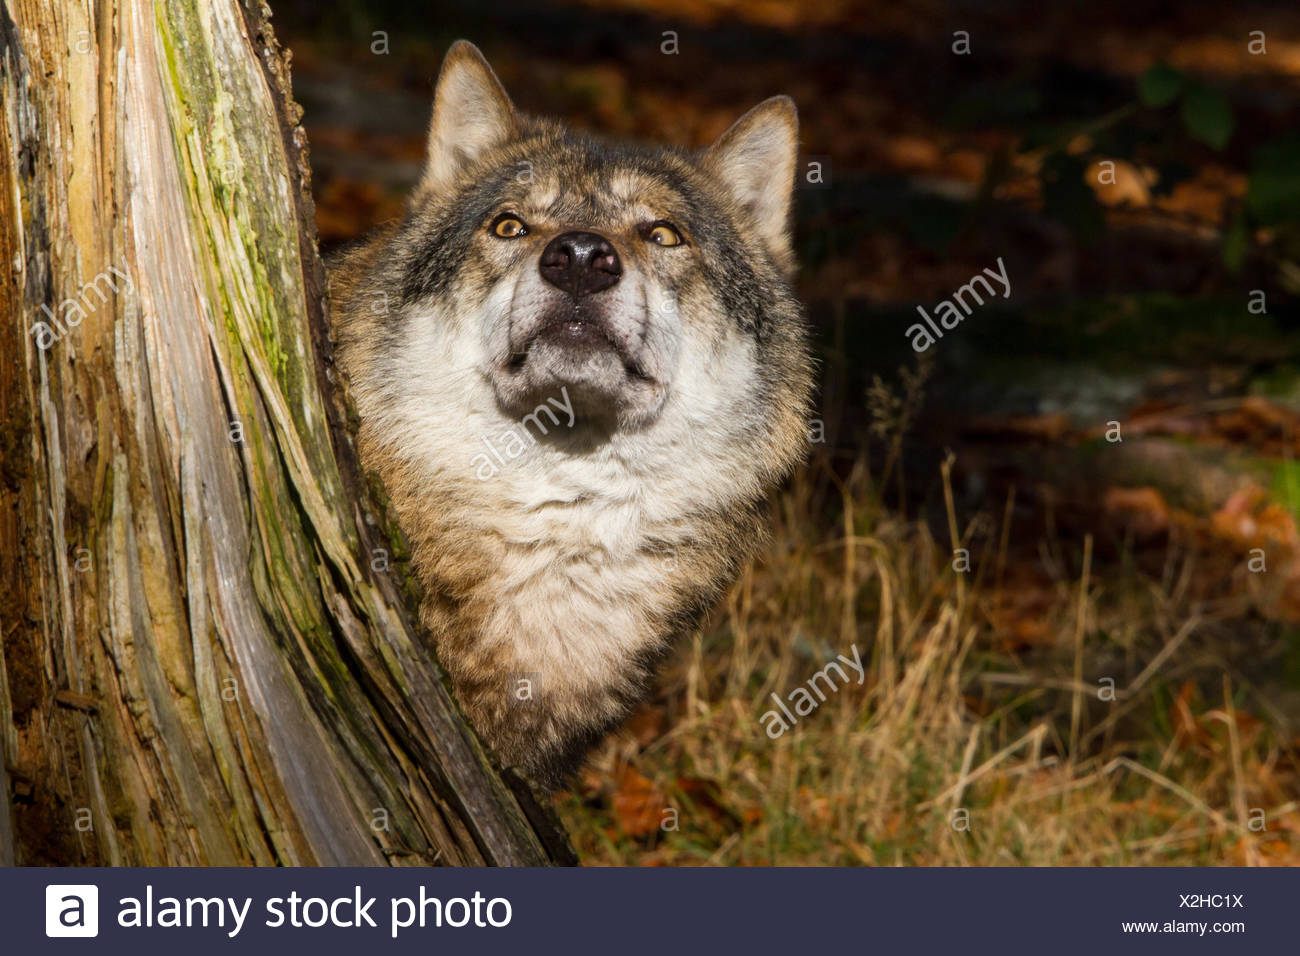 European gray wolf (Canis lupus lupus), looking out from behind a tree root, Germany, Bavaria, Bavarian Forest National Park - Stock Image